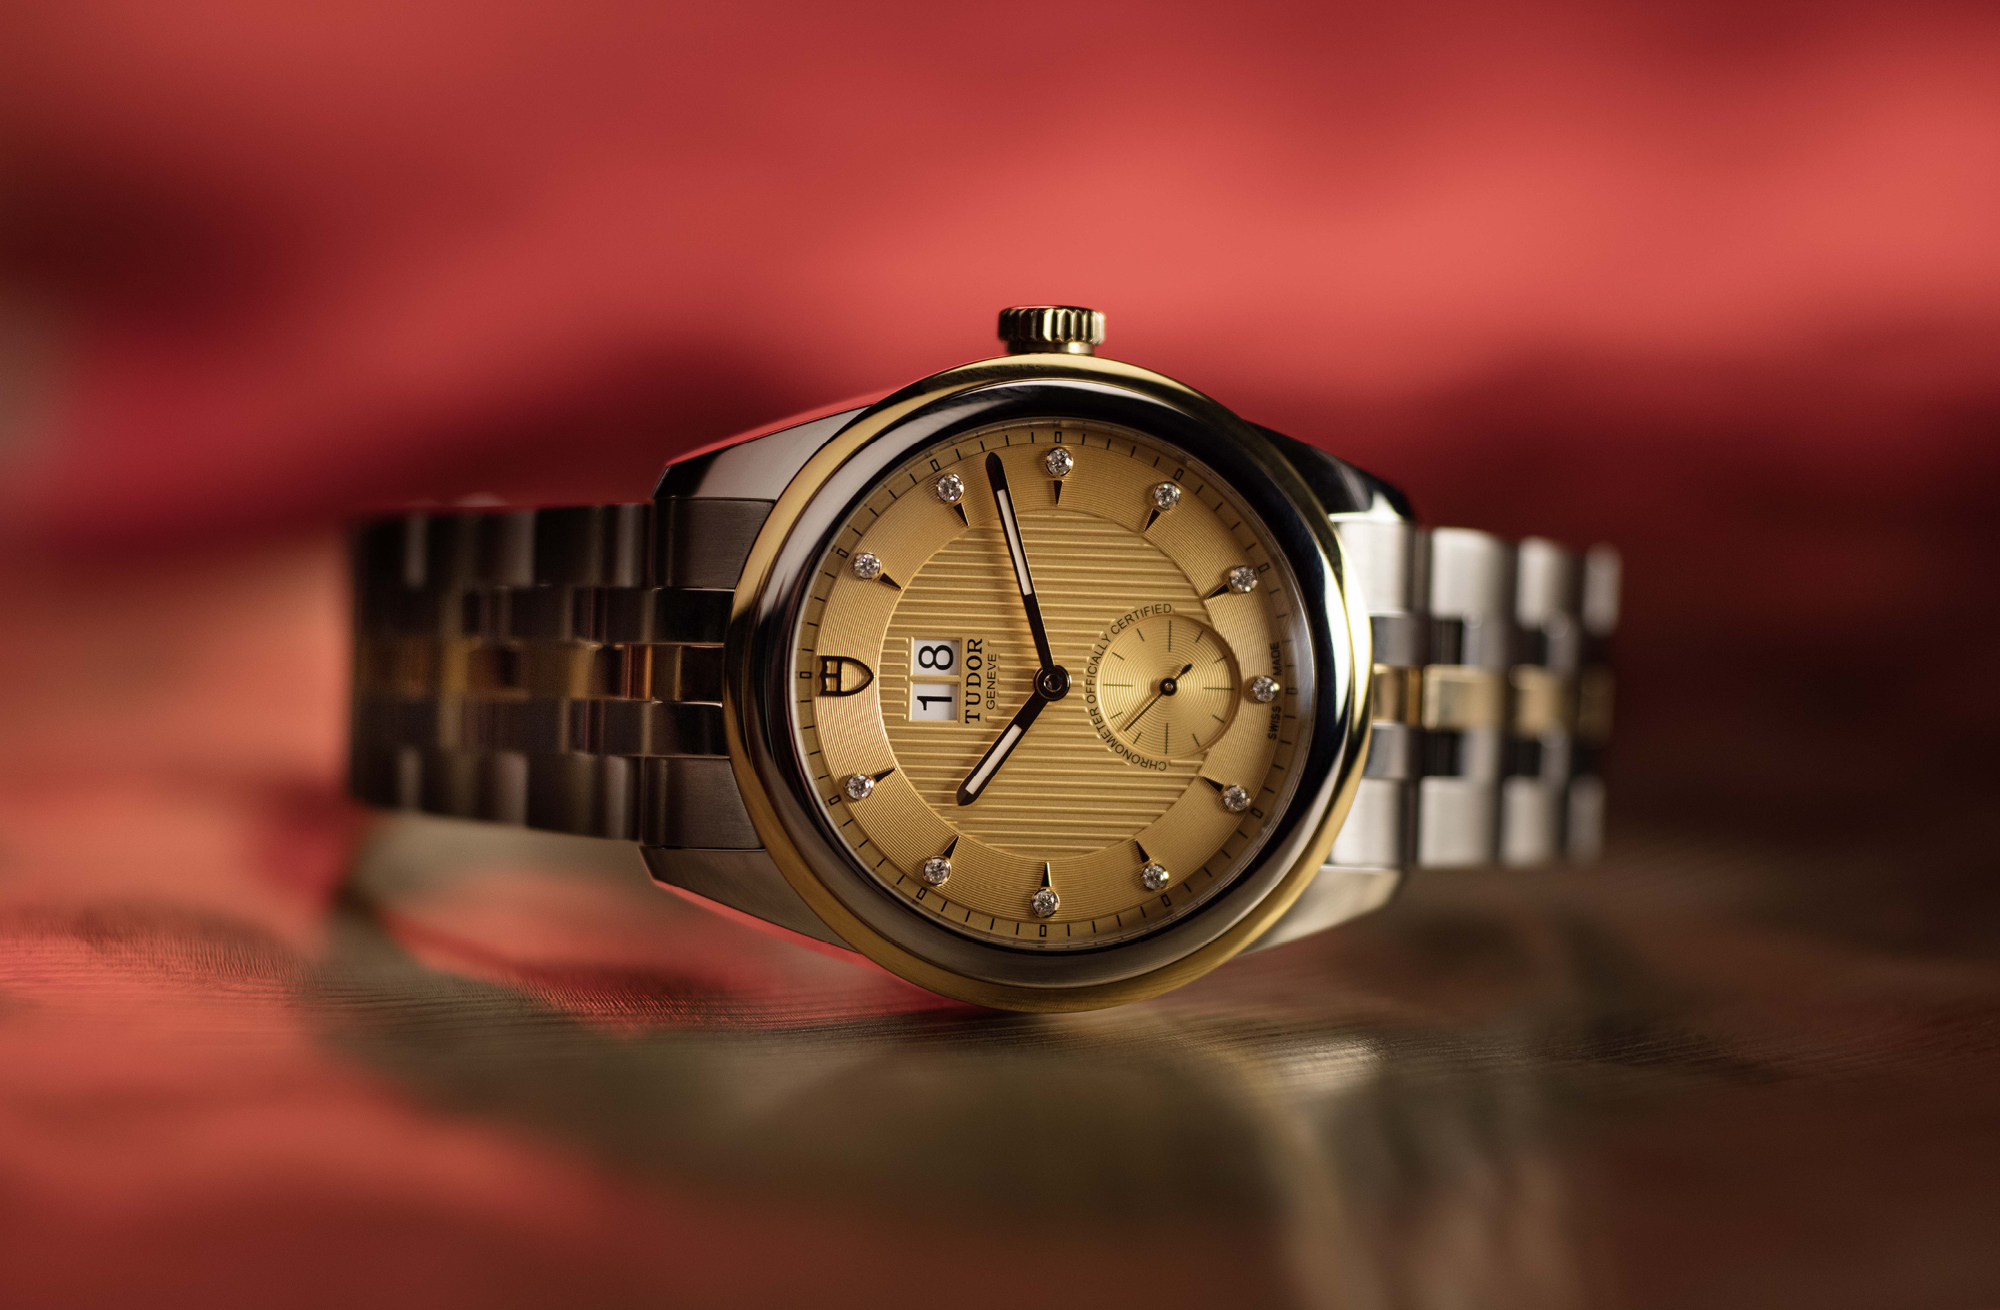 Tudor Glamour Double Date model